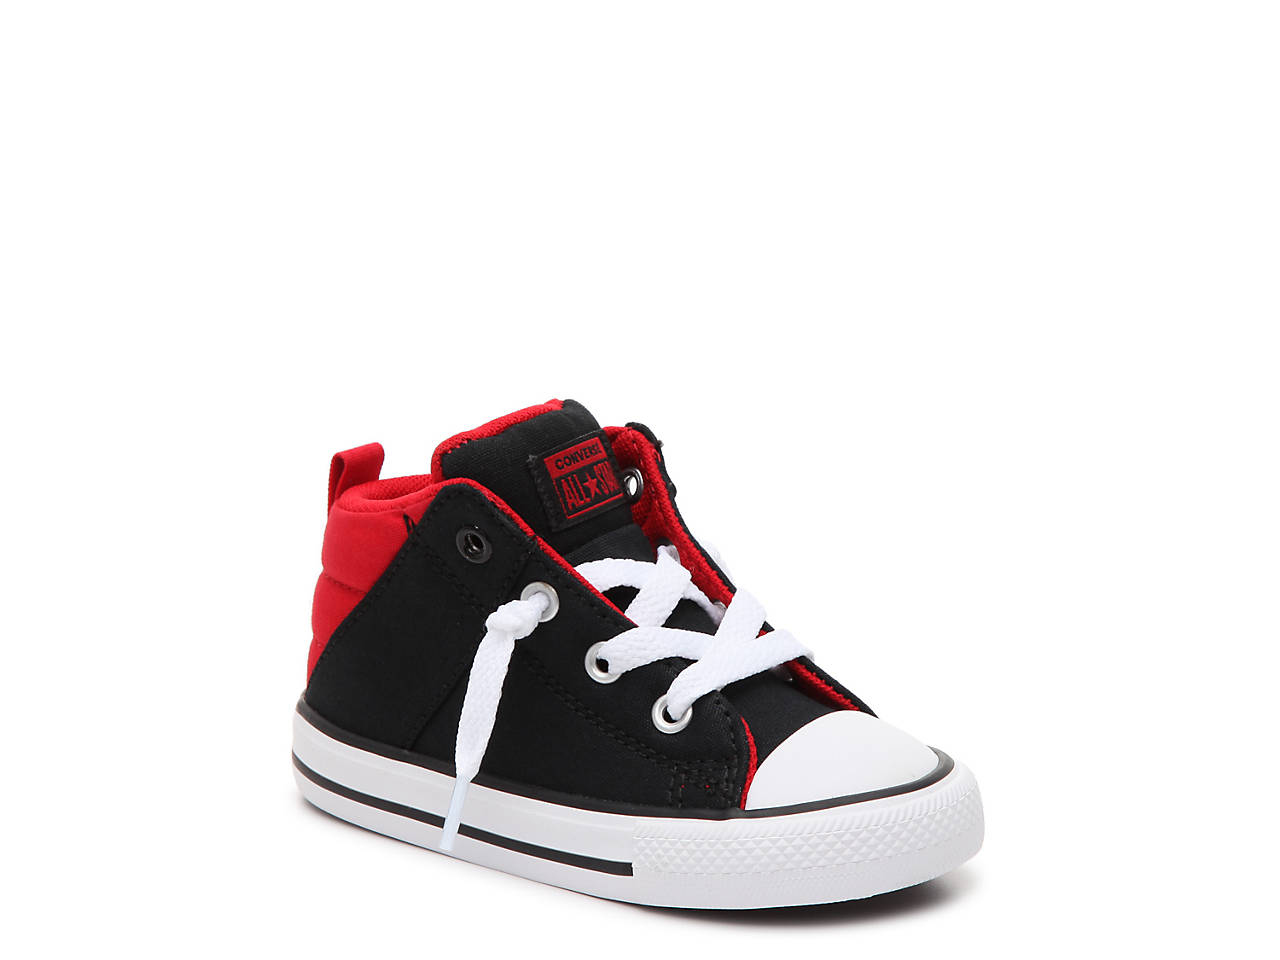 d5d7ffdb7609 Converse Chuck Taylor All Star Axel Infant   Toddler Slip-On Sneaker ...